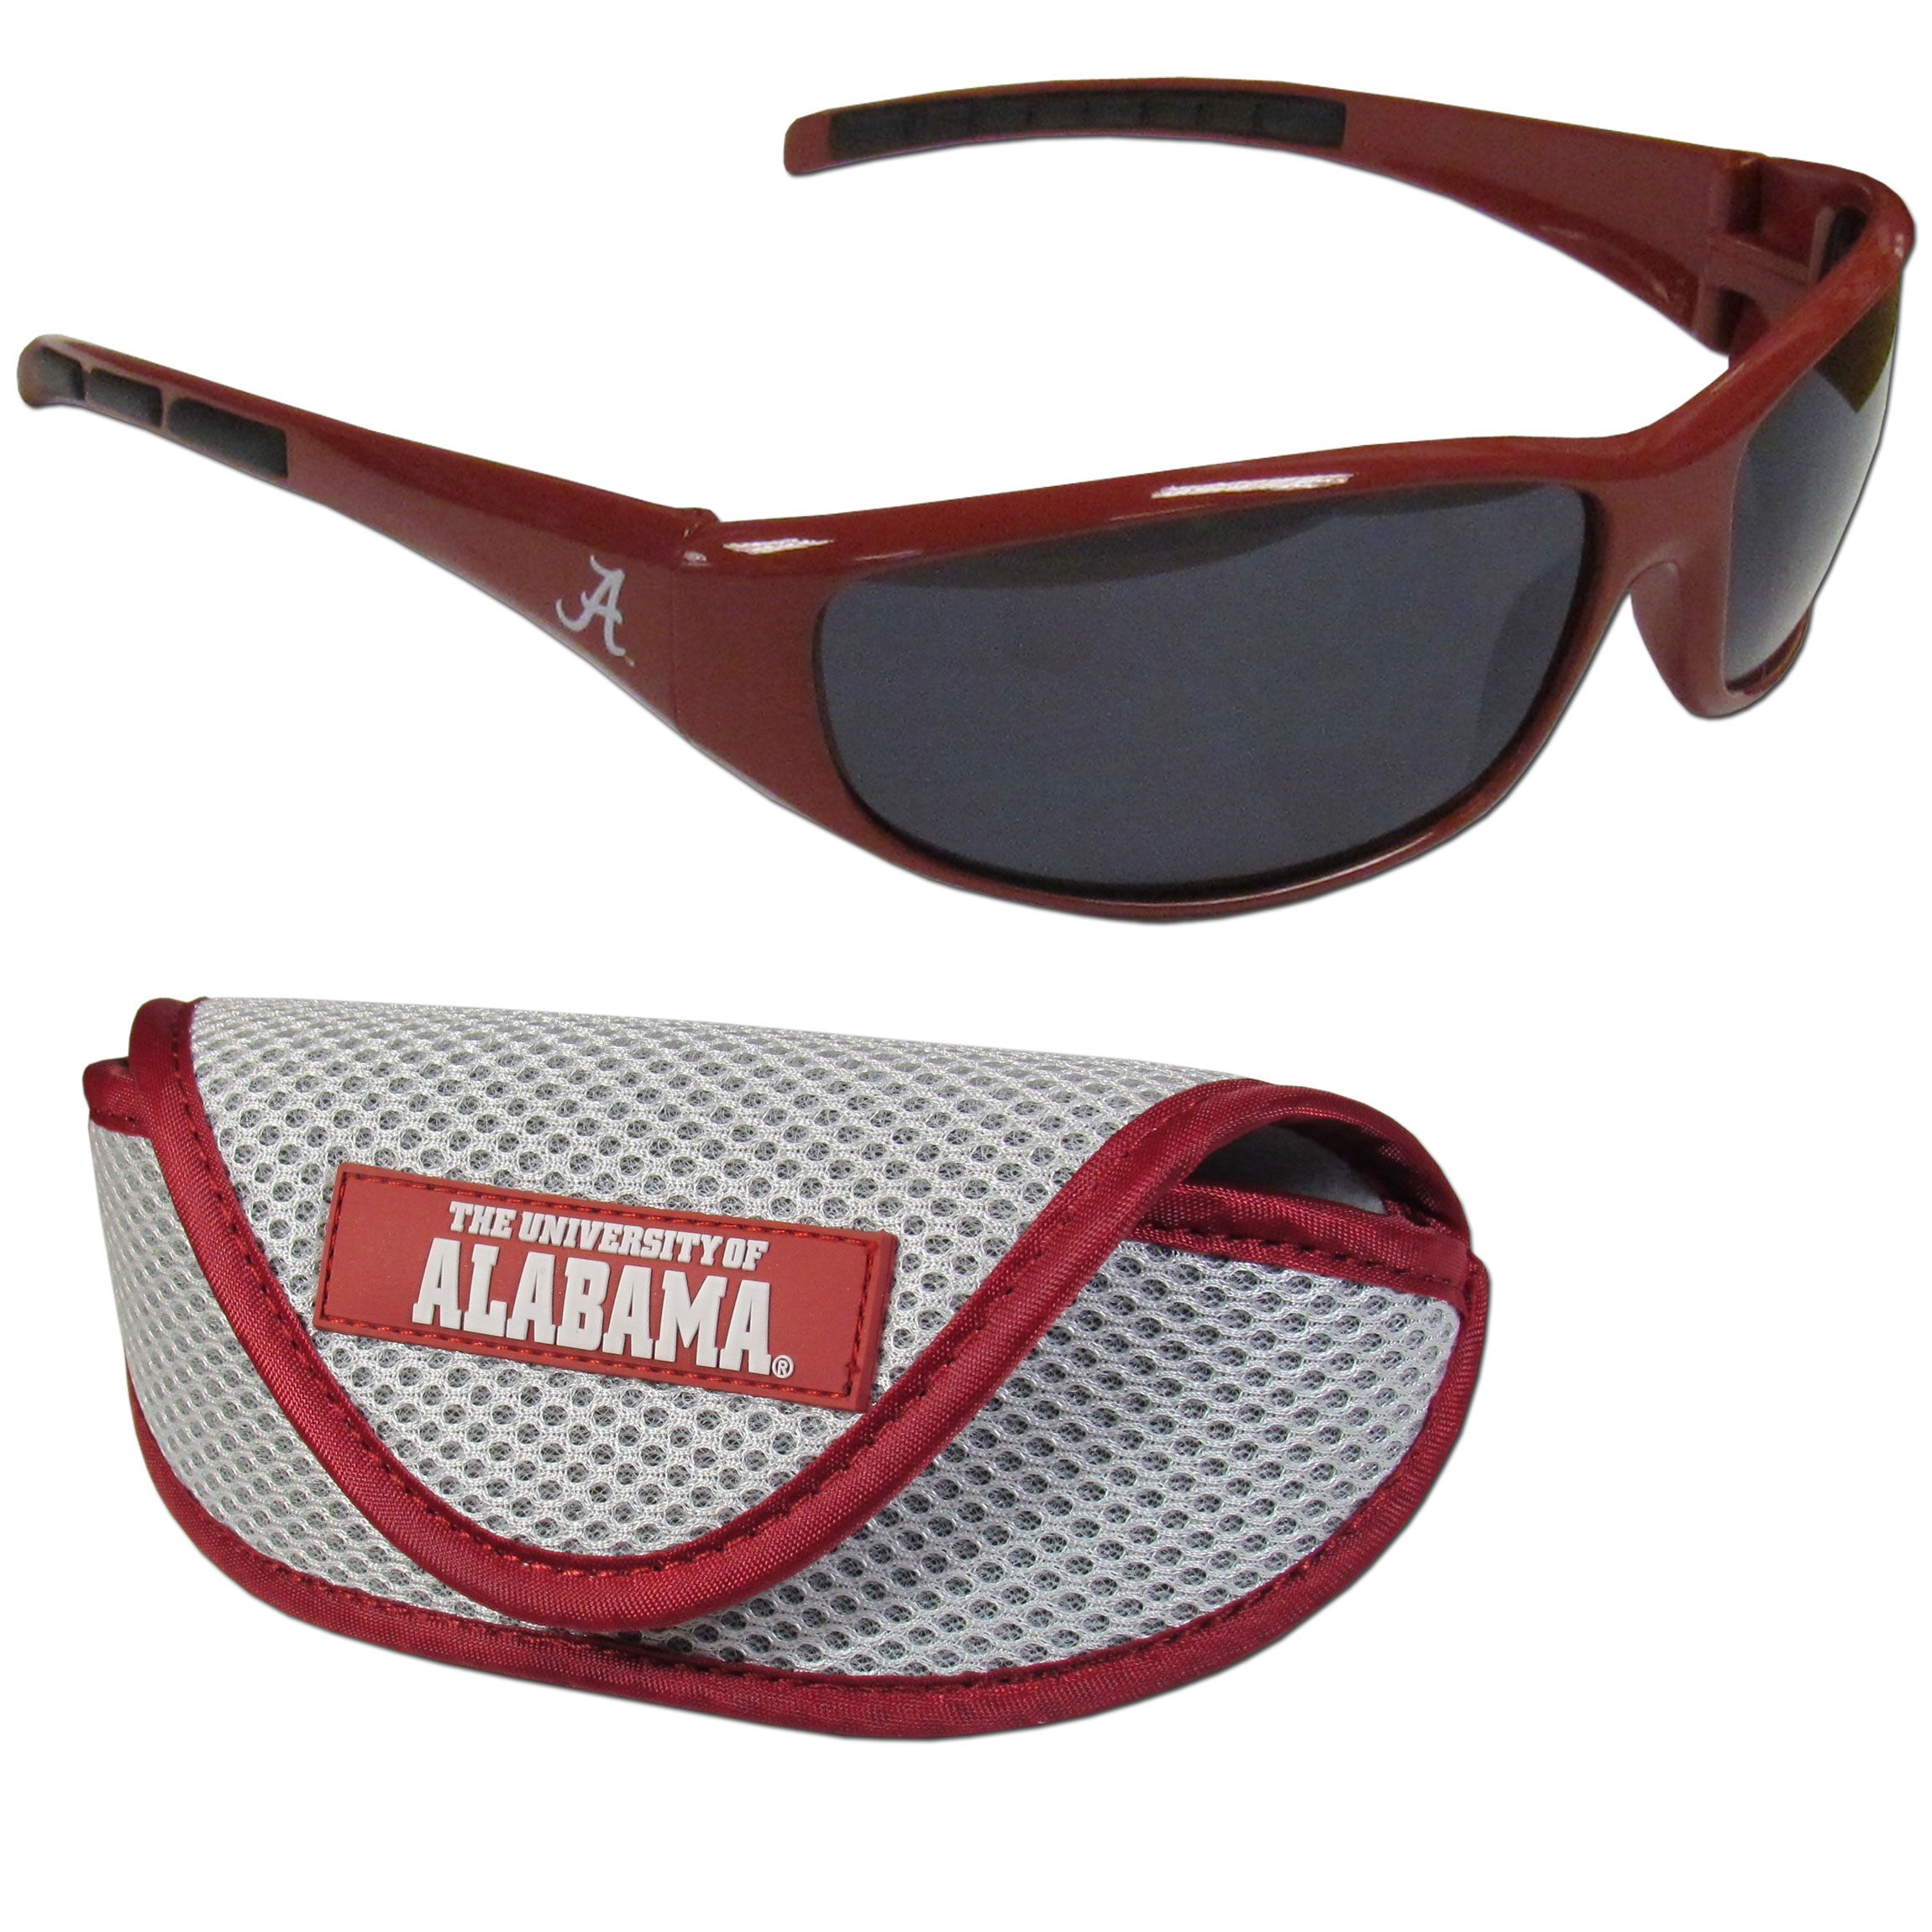 Alabama Crimson Tide Wrap Sunglass and Case Set - This great set includes a high quality pair of Alabama Crimson Tide wrap sunglasses and soft sport carrying case.